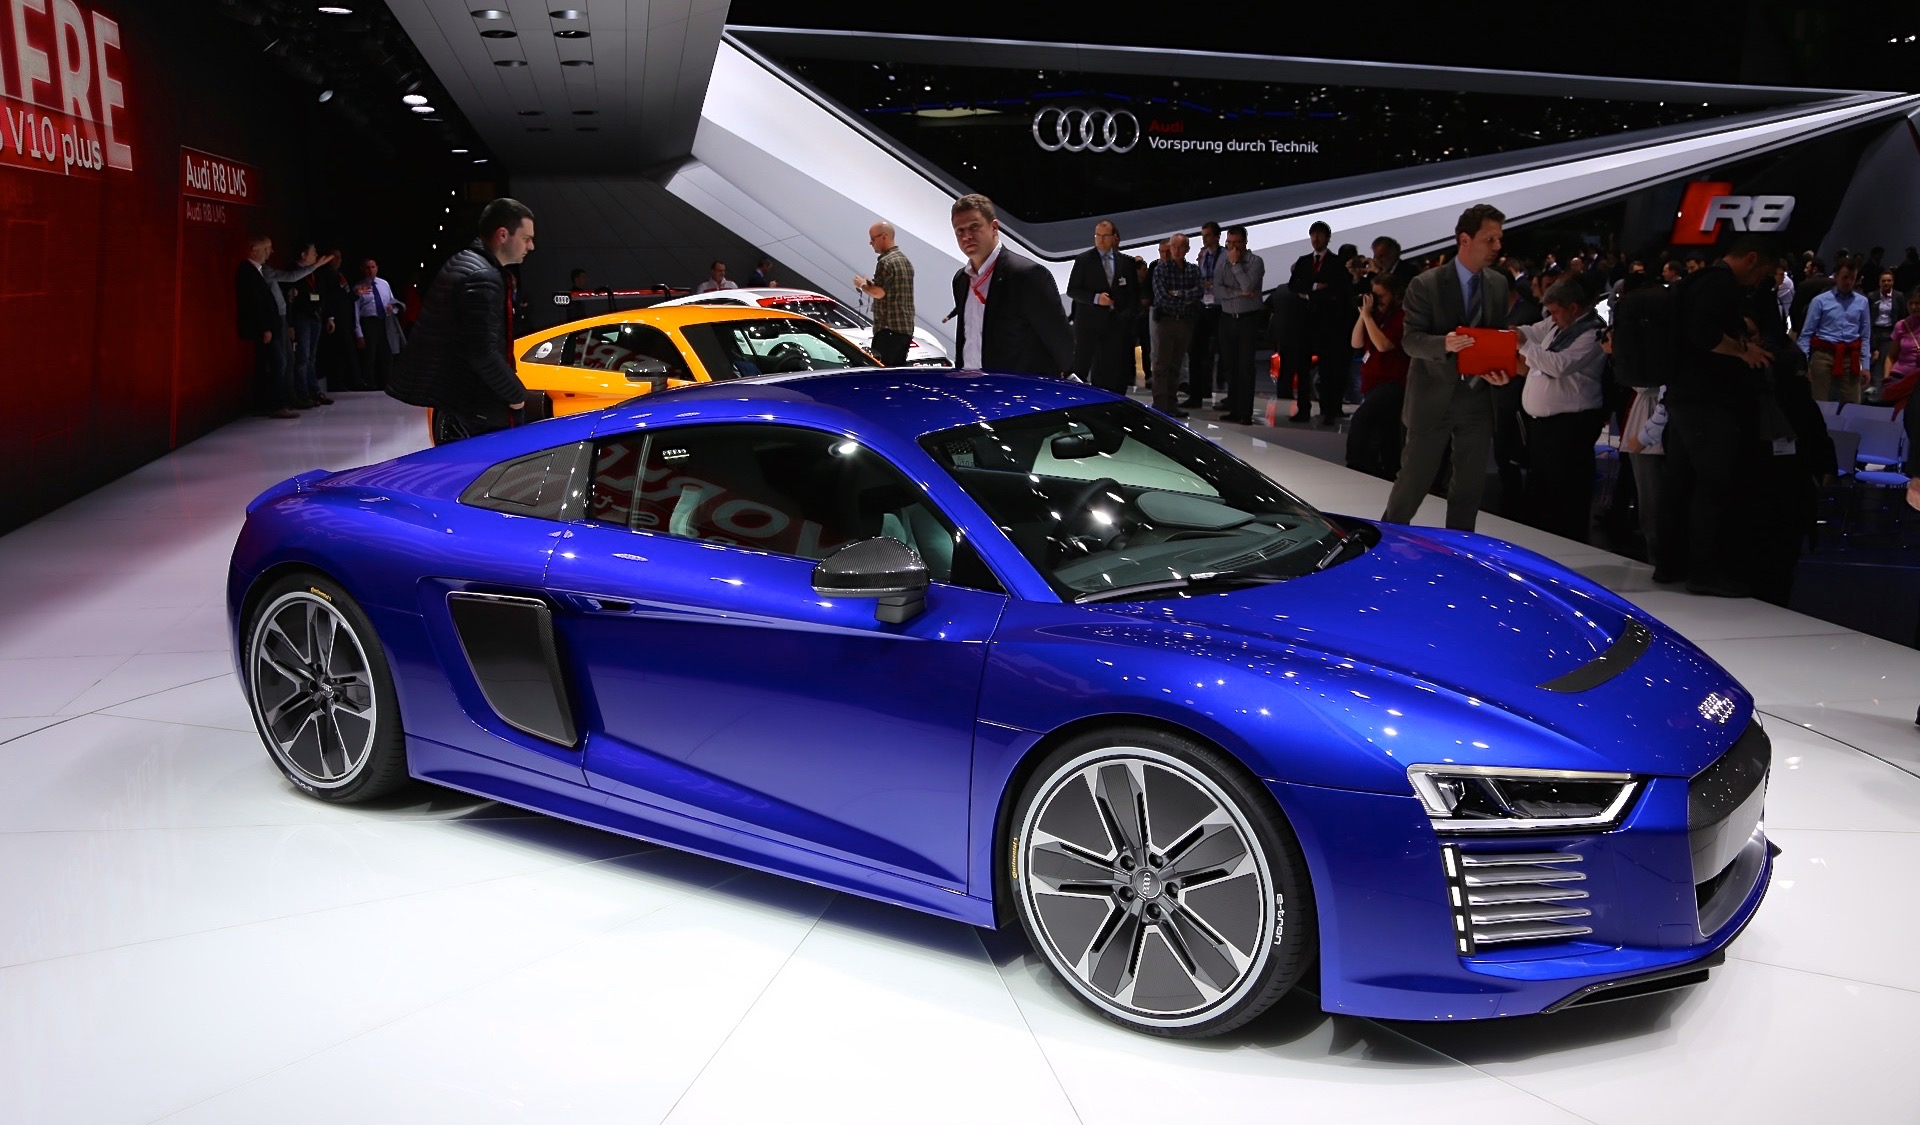 2018 audi i8. plain audi 2017 audi r8 etron allelectric sports car live photos from geneva motor  show throughout 2018 audi i8 r